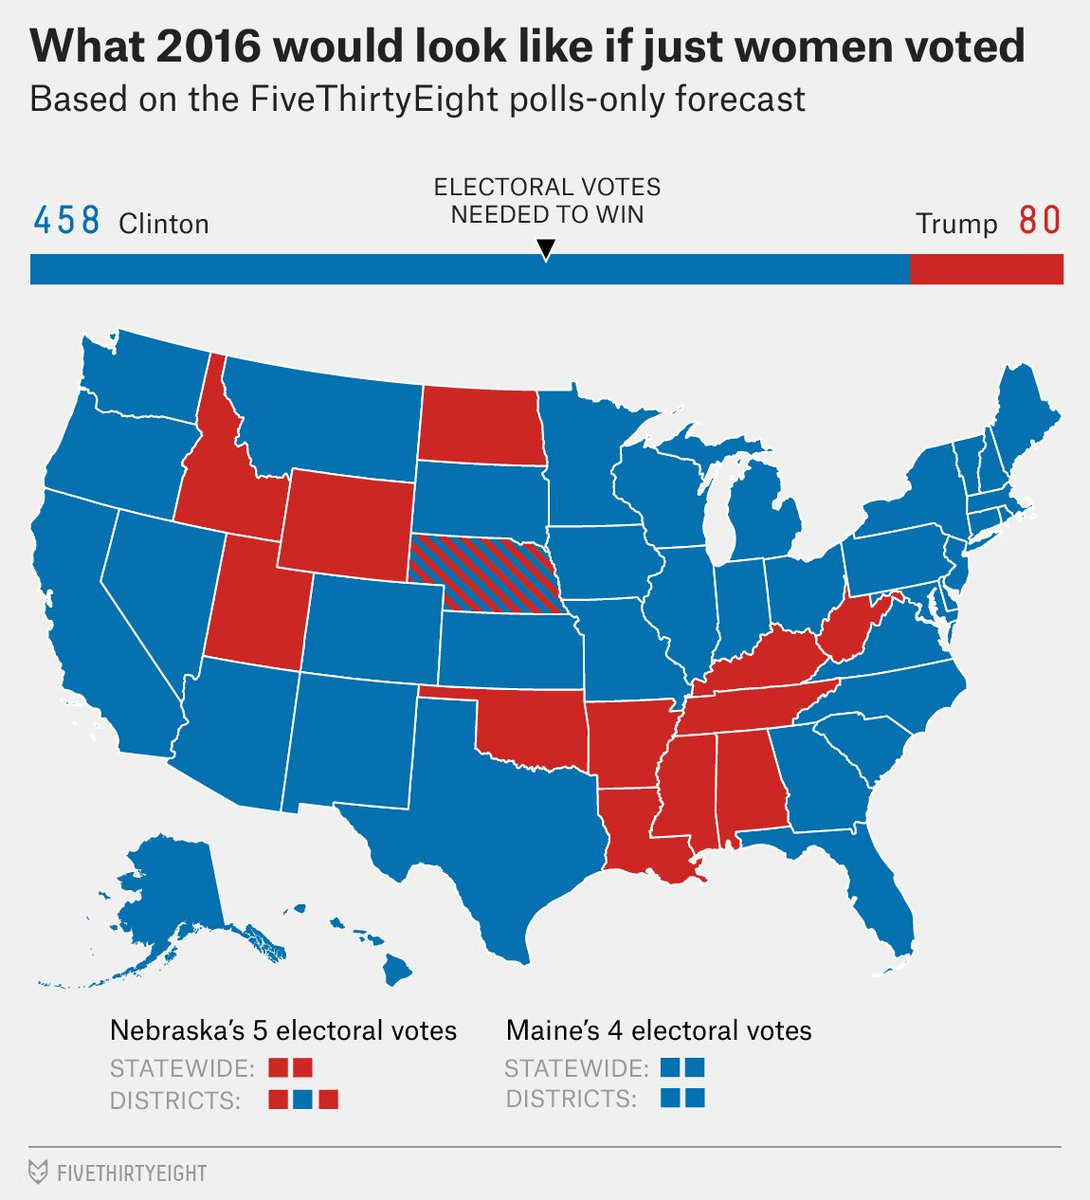 nate silver on twitter here s what the map would look line if only